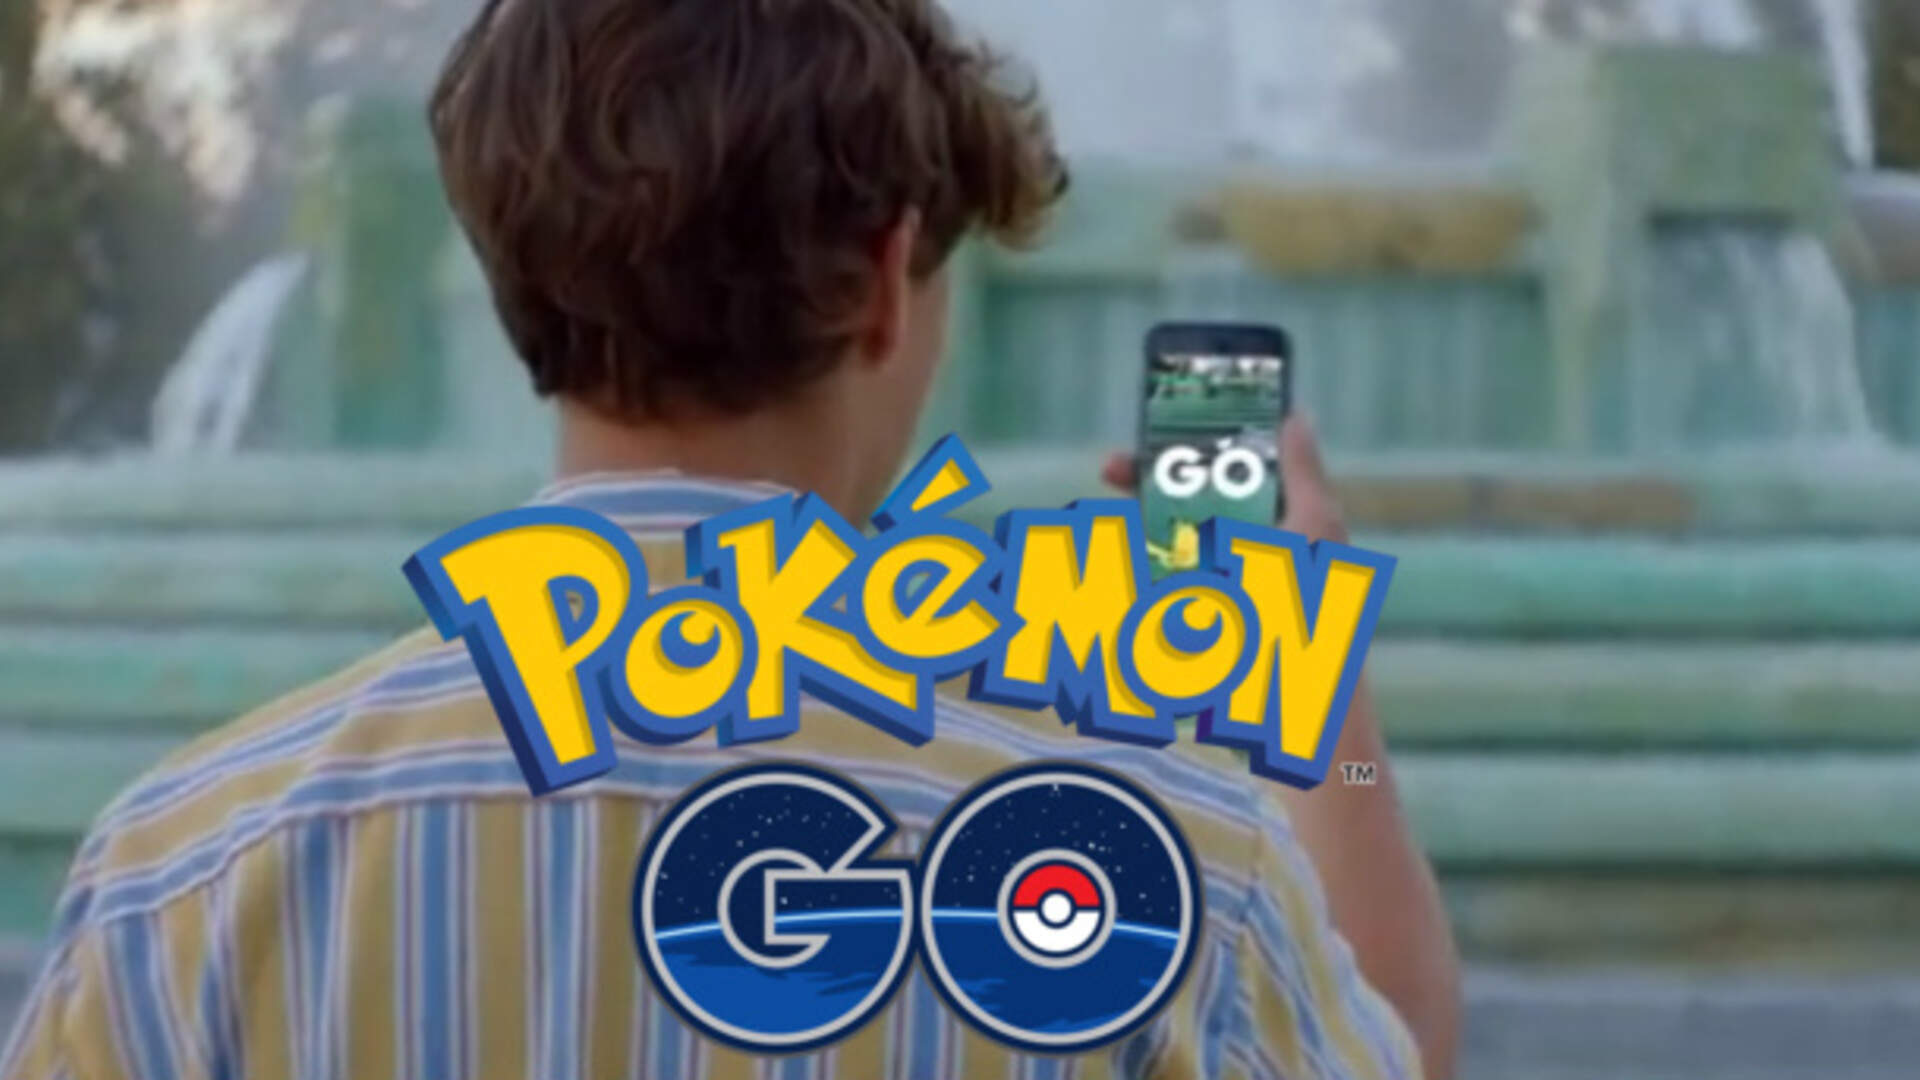 Pokemon Go Celebrates its First Year With Real-World Festivals and a Multiplayer Update